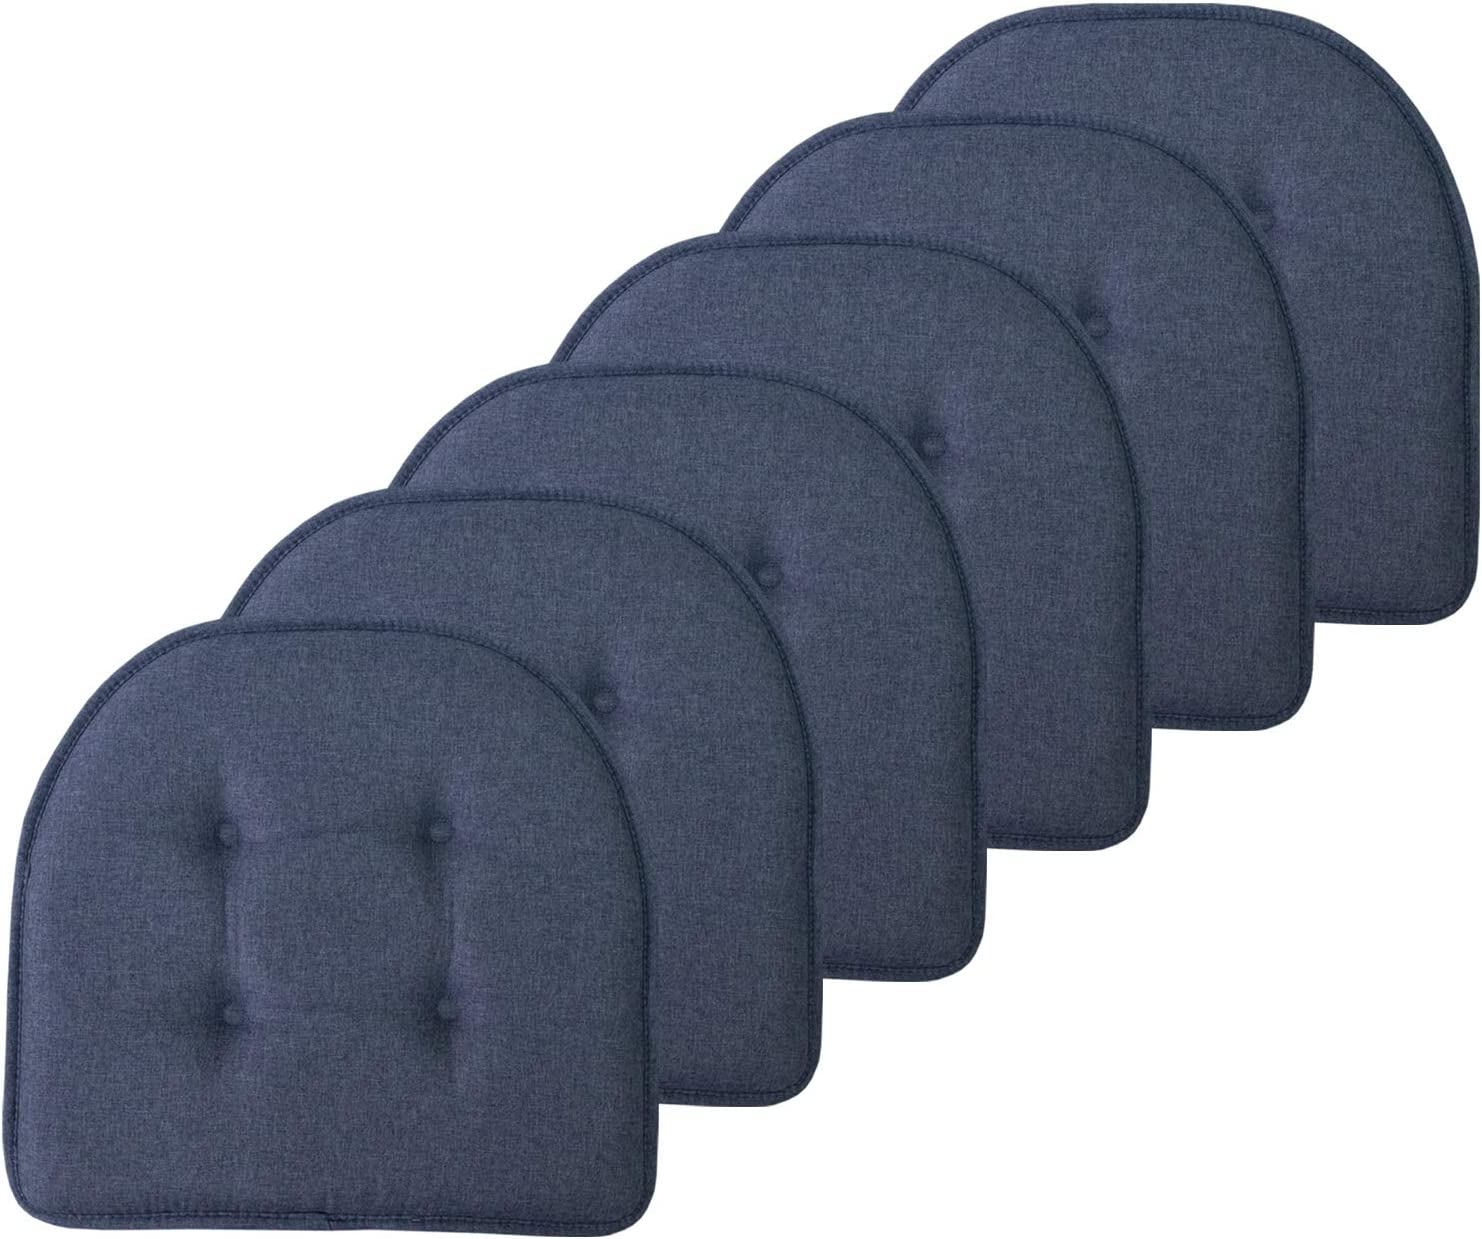 """Sweet Home Collection Chair Cushion Memory Foam Pads Tufted Slip Non Skid Rubber Back U-Shaped 17"""" x 16"""" Seat Cover, 6 Pack, Denim Blue"""